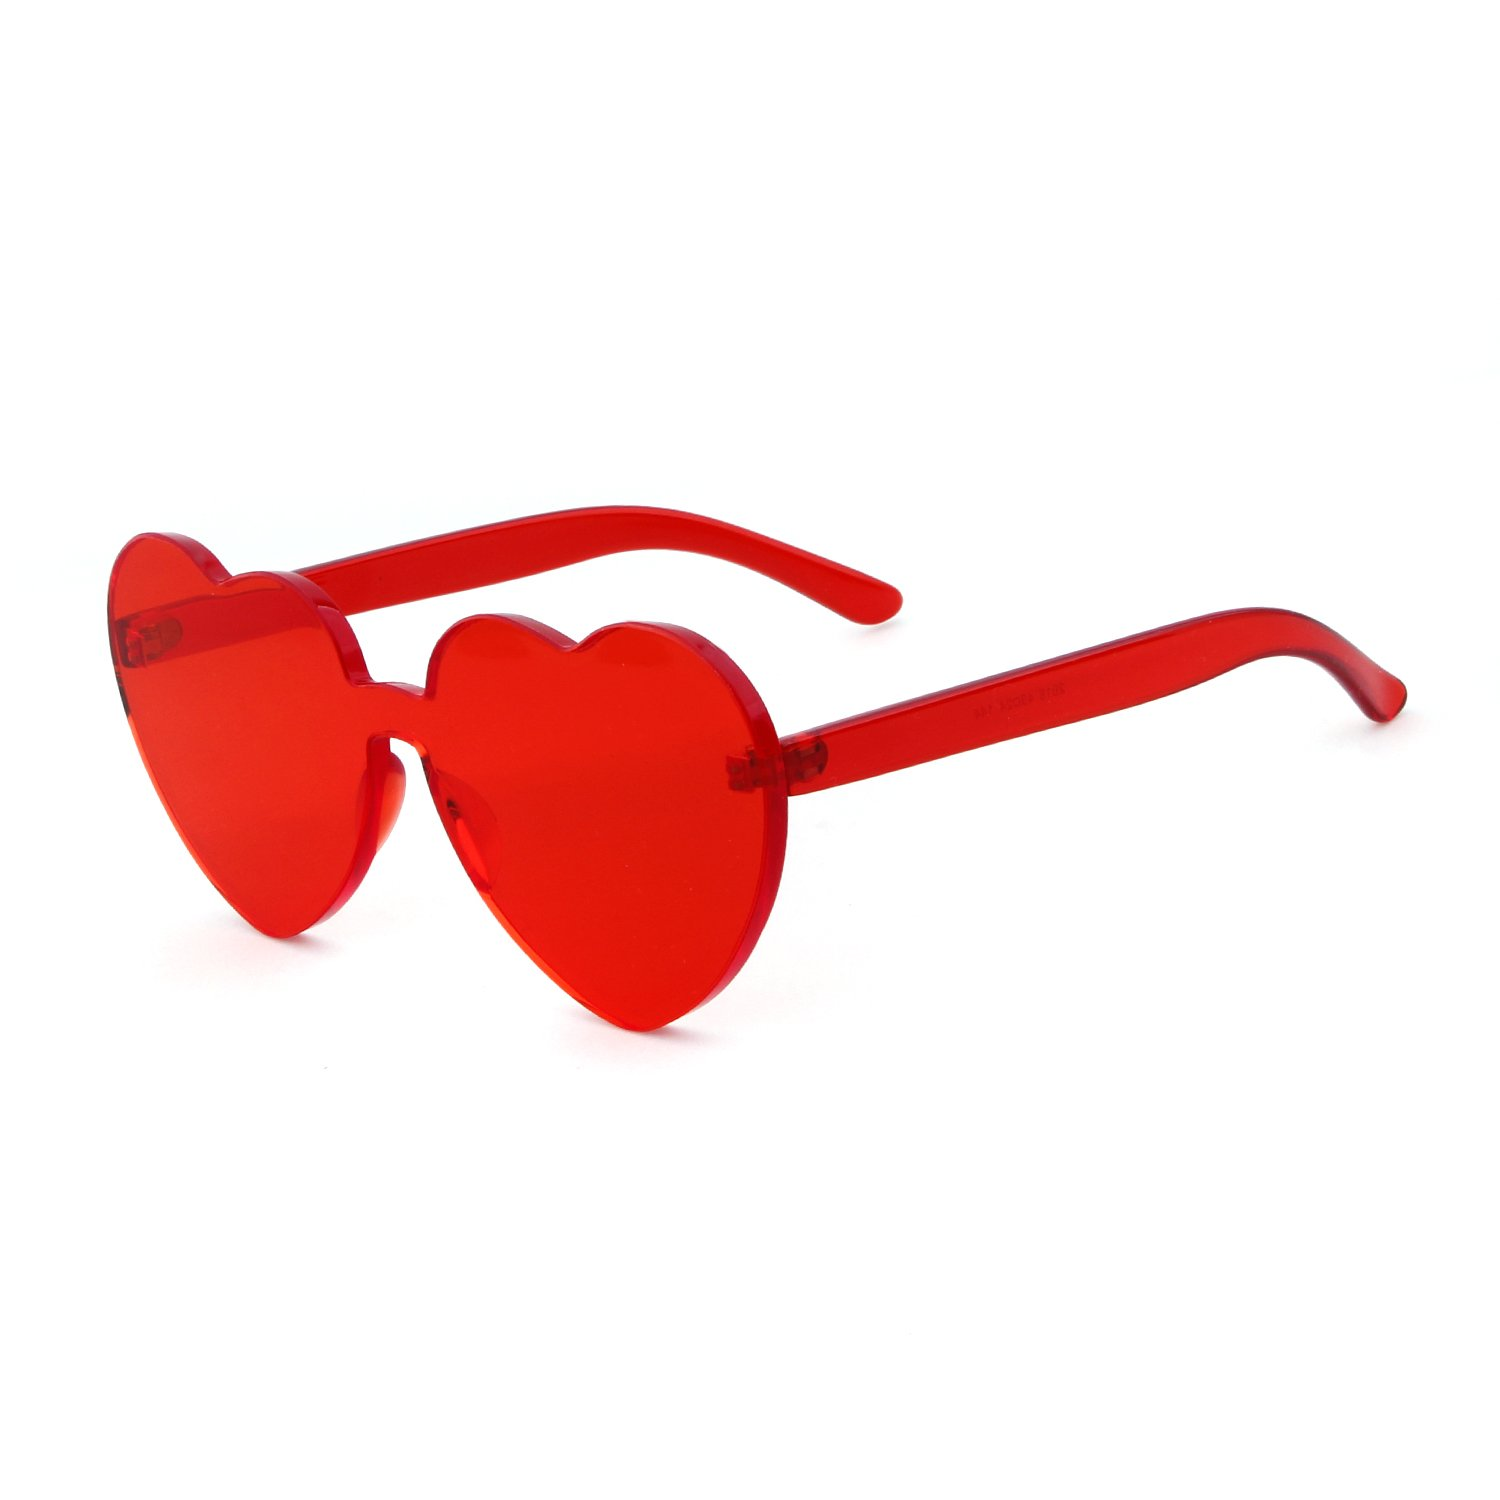 Rimless Sunglasses Love Heart Glasses Transparent One Piece Eyewear